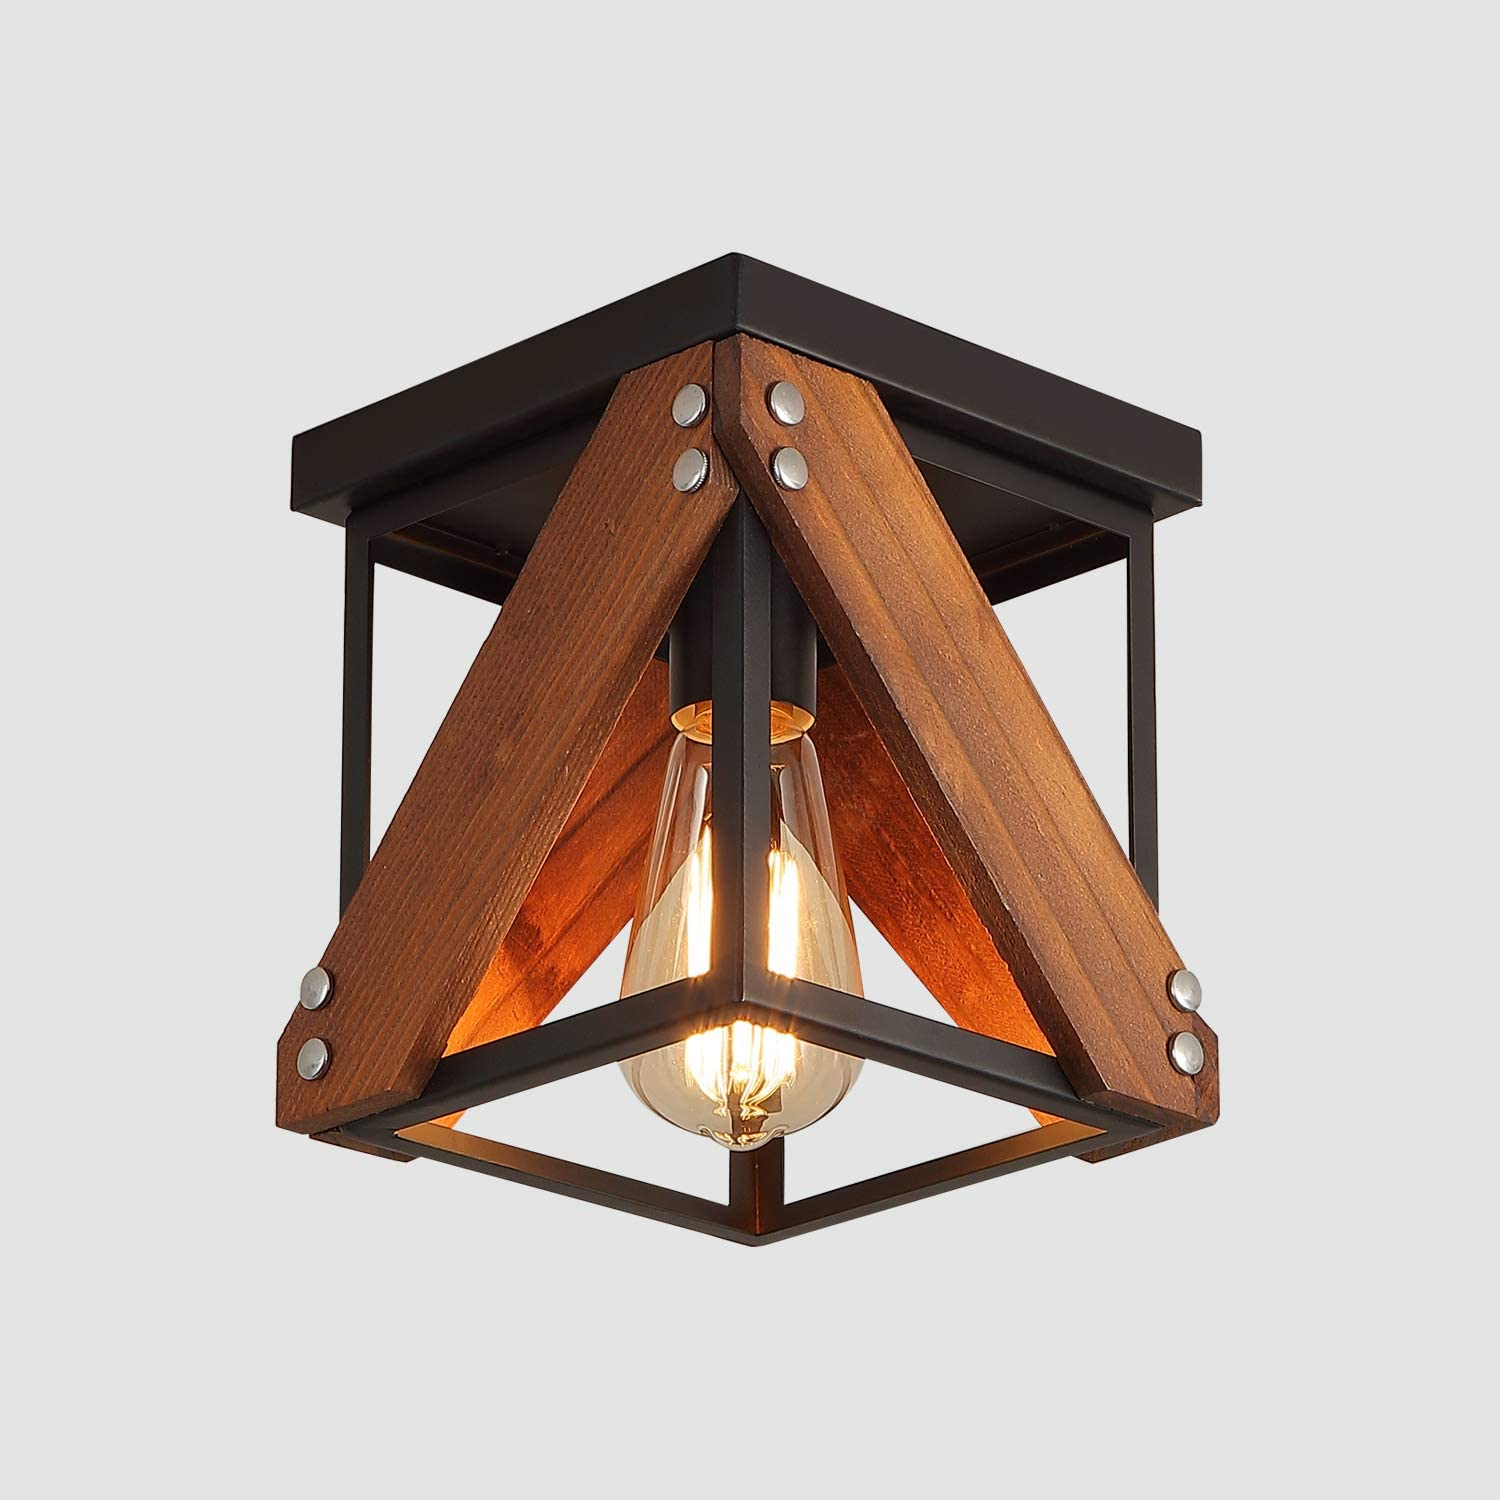 Rustic Industrial Flush Mount Ceiling Light 1 Light Metal And Wood Cage Mini Semi Flush Mount Light Fixture For Hallway Kitchen Entryway Black Amazon Ca Tools Home Improvement